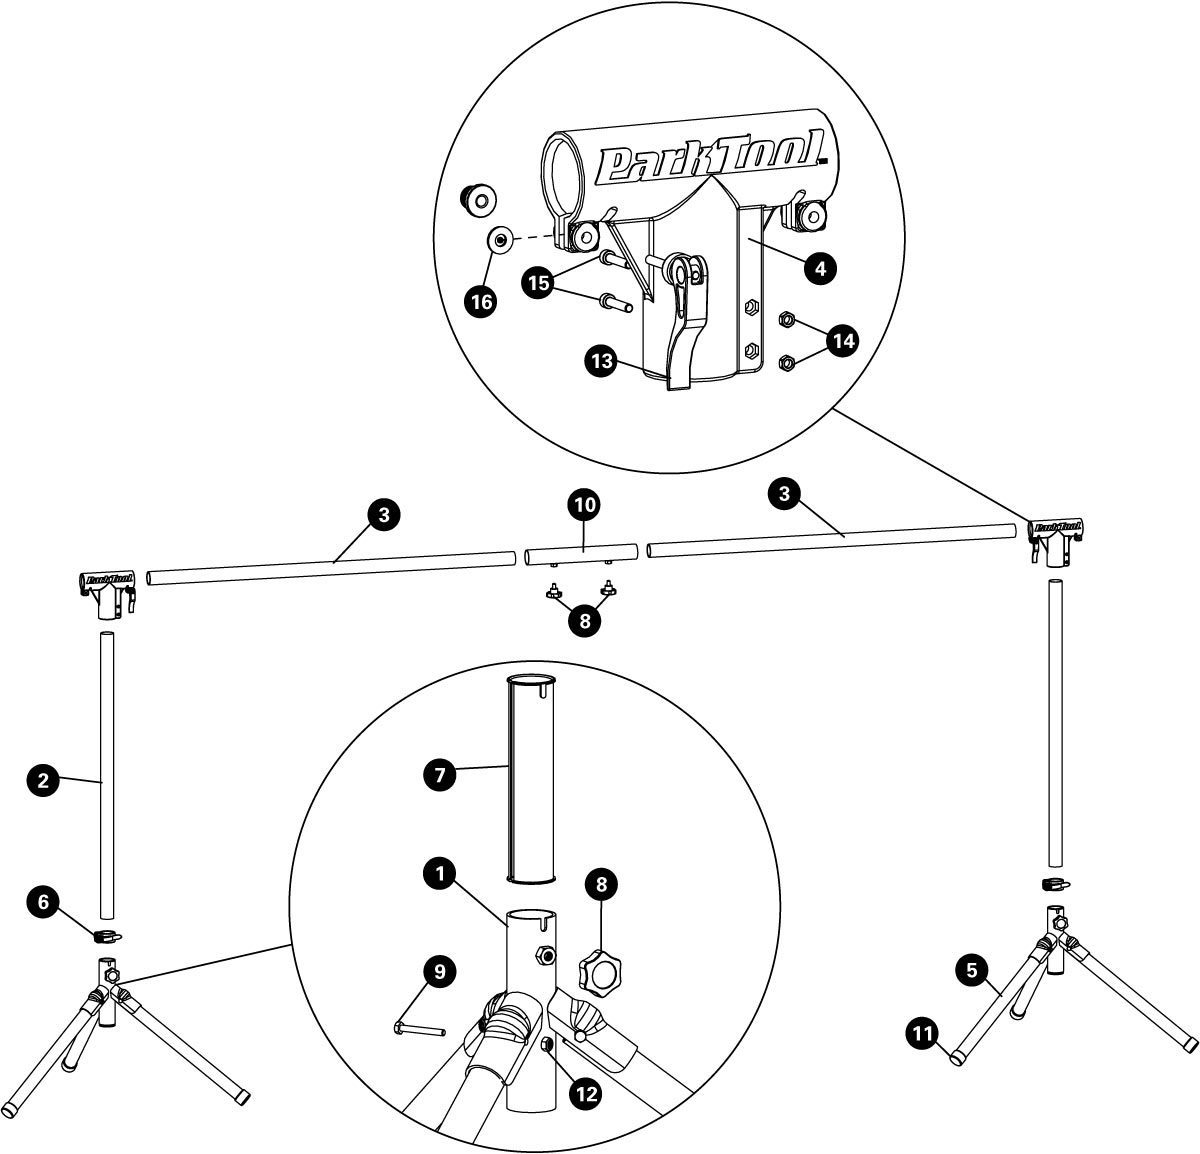 Parts diagram for ES-2 Event Stand Add-On Kit, click to enlarge